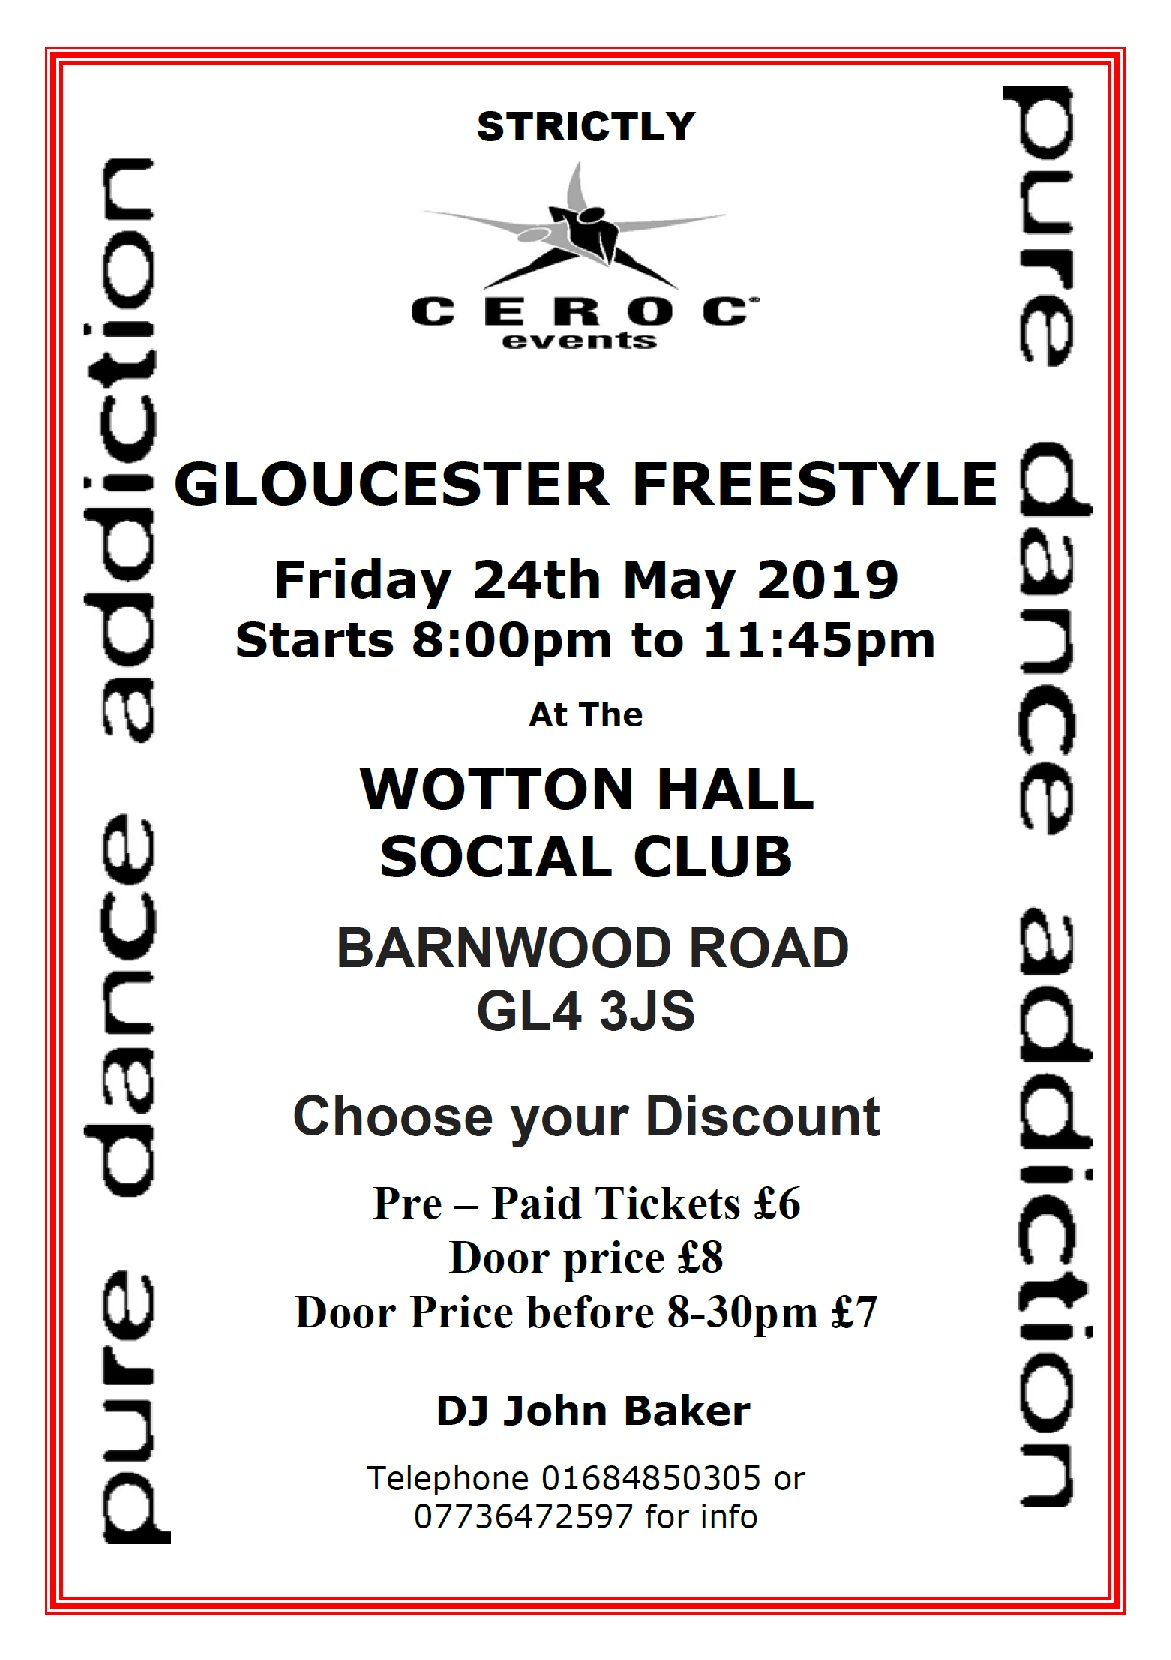 MAY 24TH 2019 CEROC Gloucester freestylE